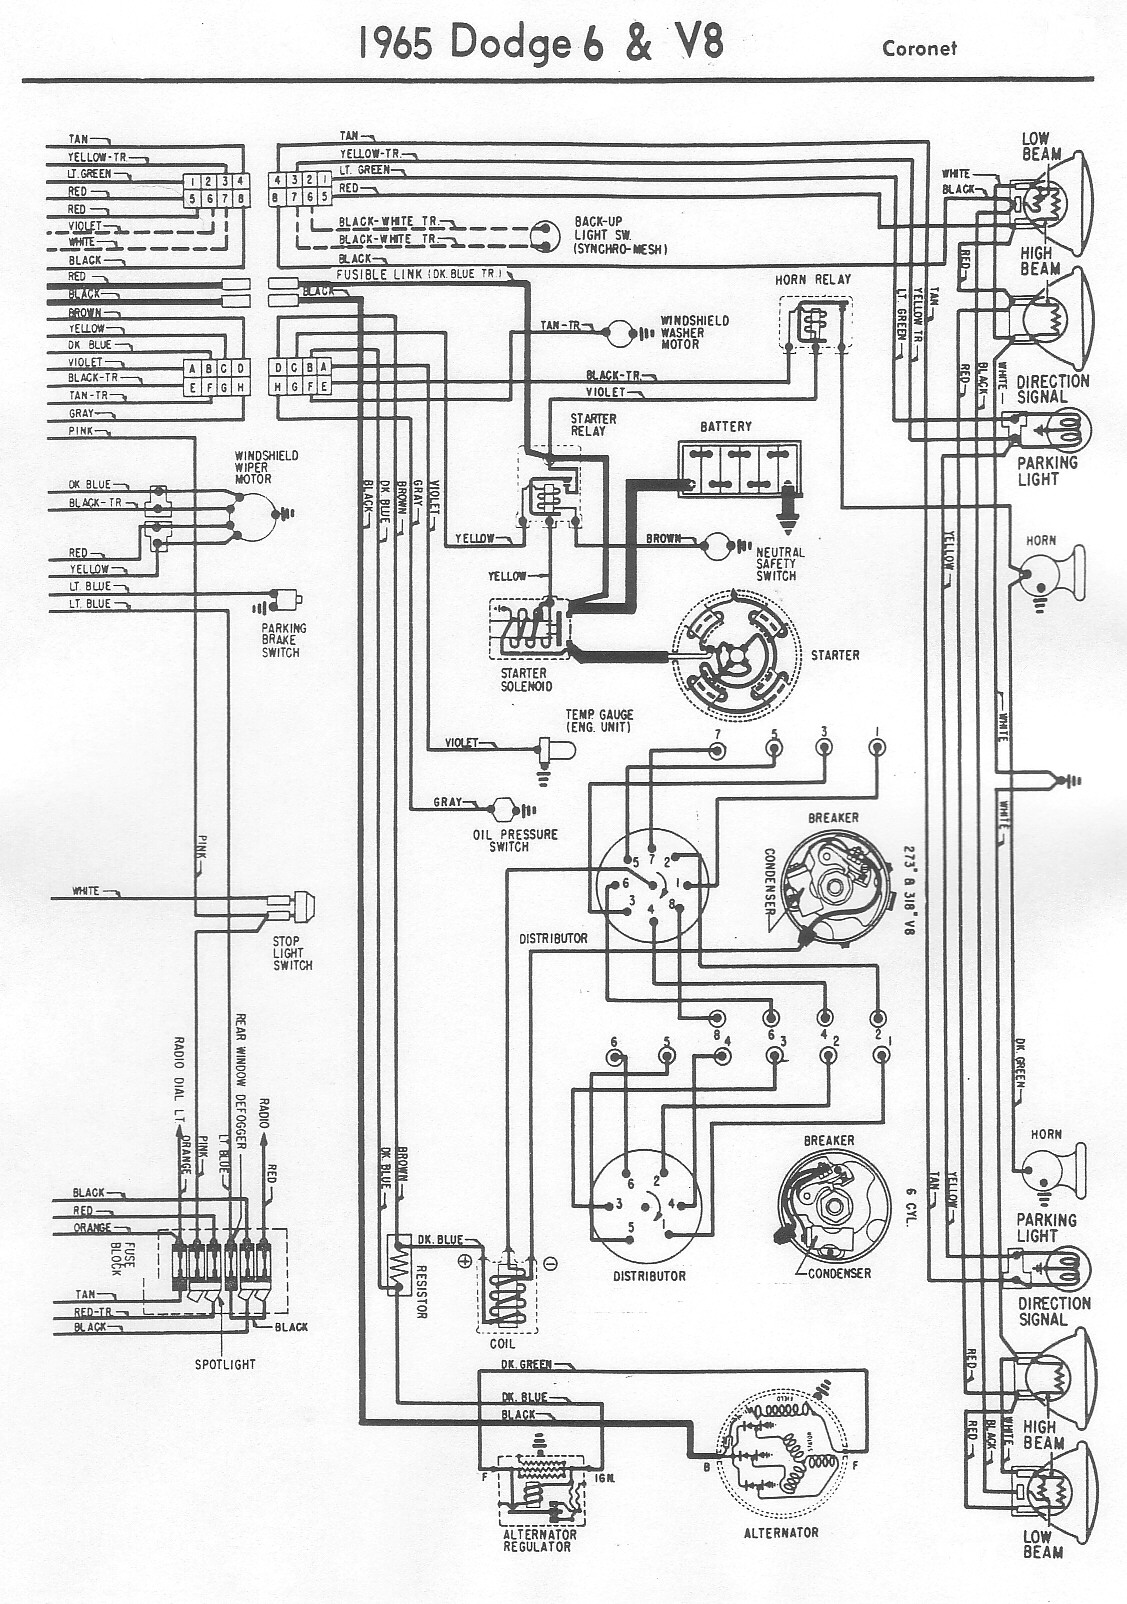 1964 gm fuse box fuse panel wiring schematic for 57 chevy wiringplymouth valiant fuse box explained [ 1127 x 1604 Pixel ]